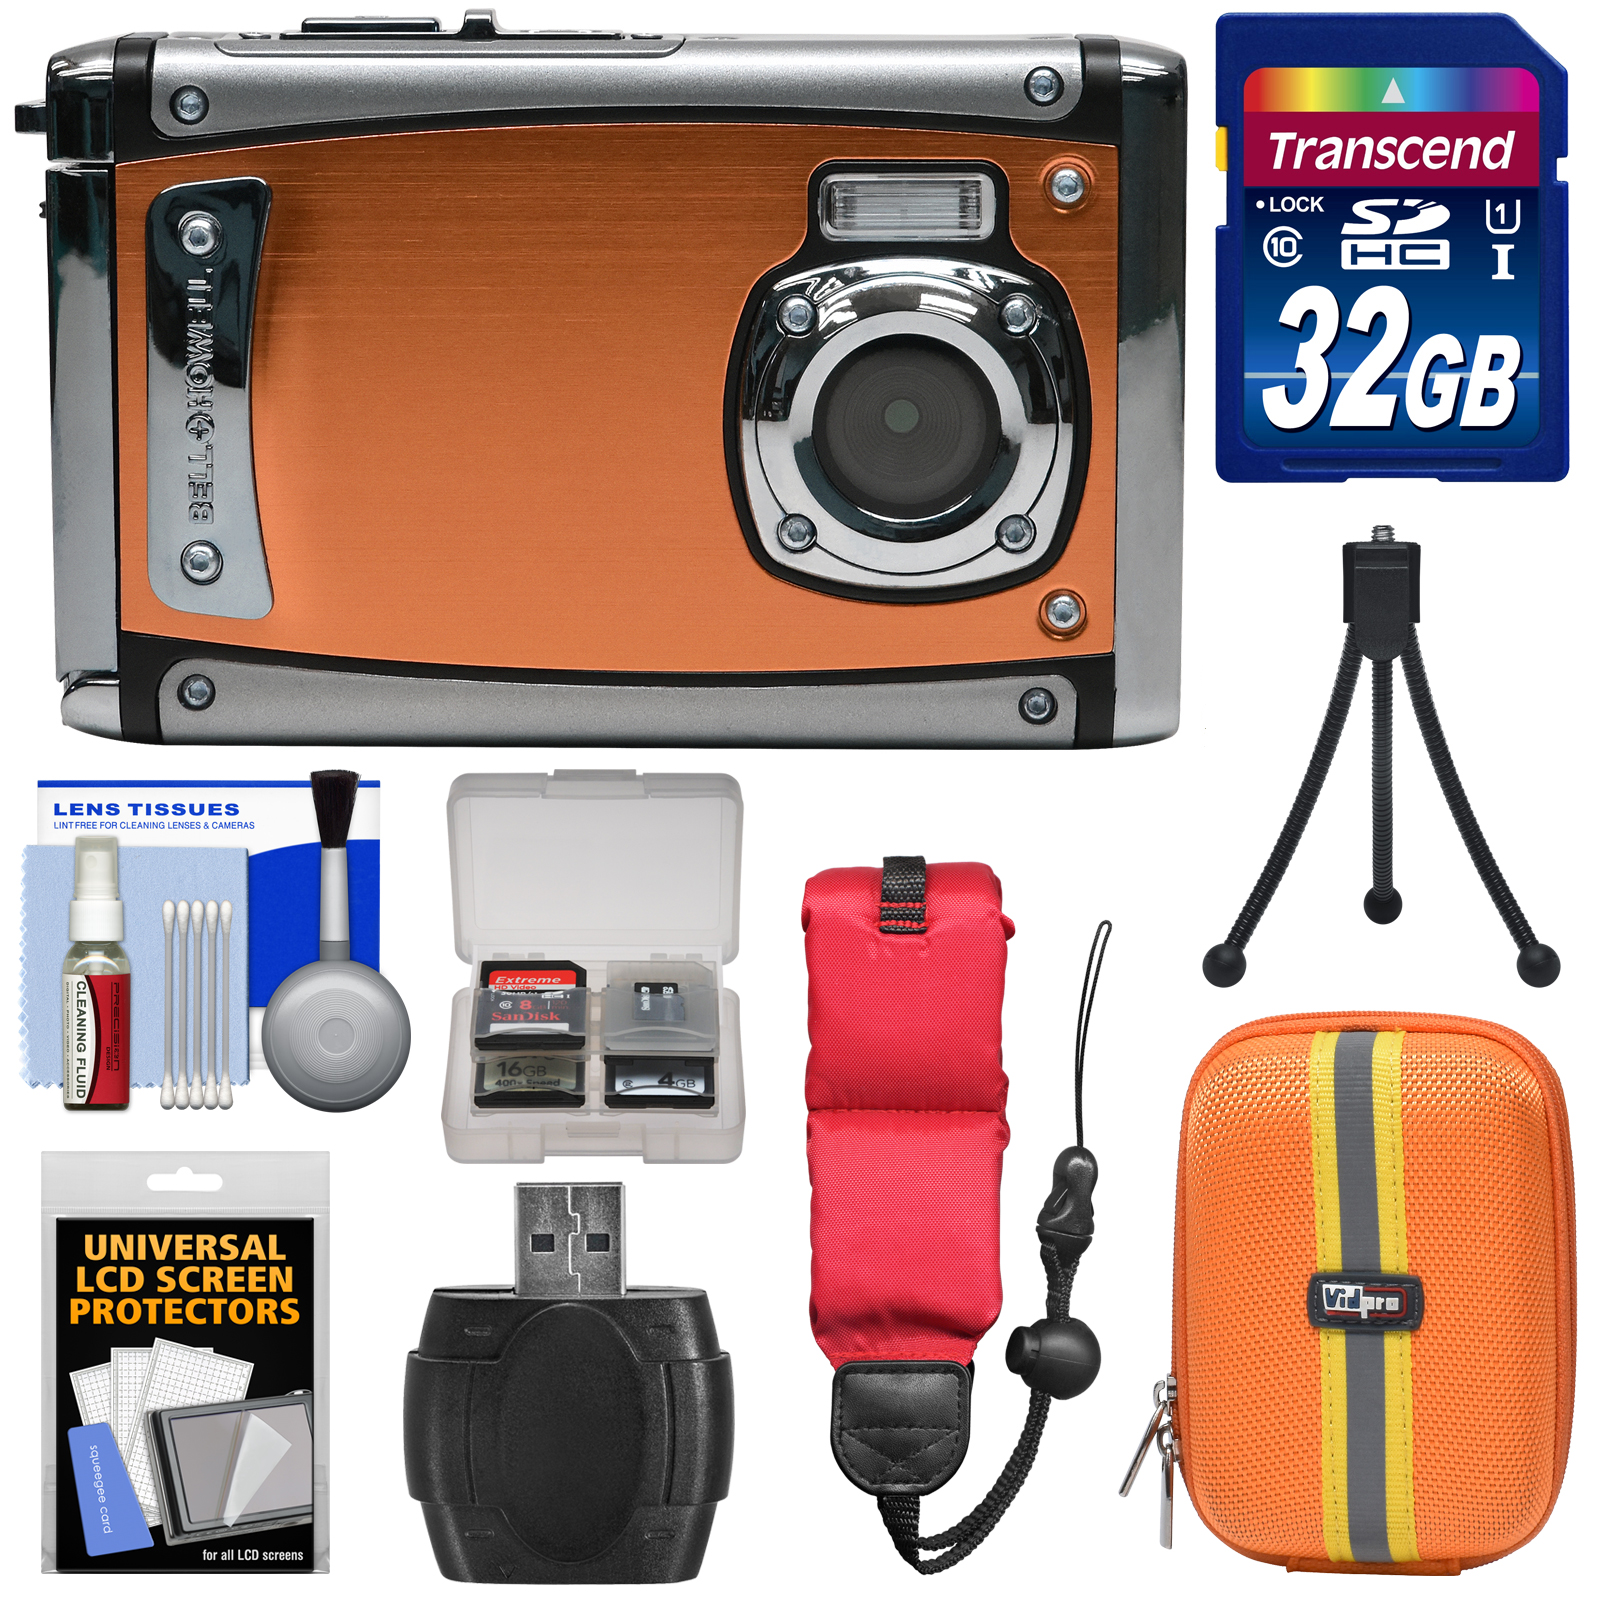 Bell & Howell Splash3 WP20 HD Shock & Waterproof Digital Camera (Black) with 32GB Card + Case + Float Strap + Tripod Kit